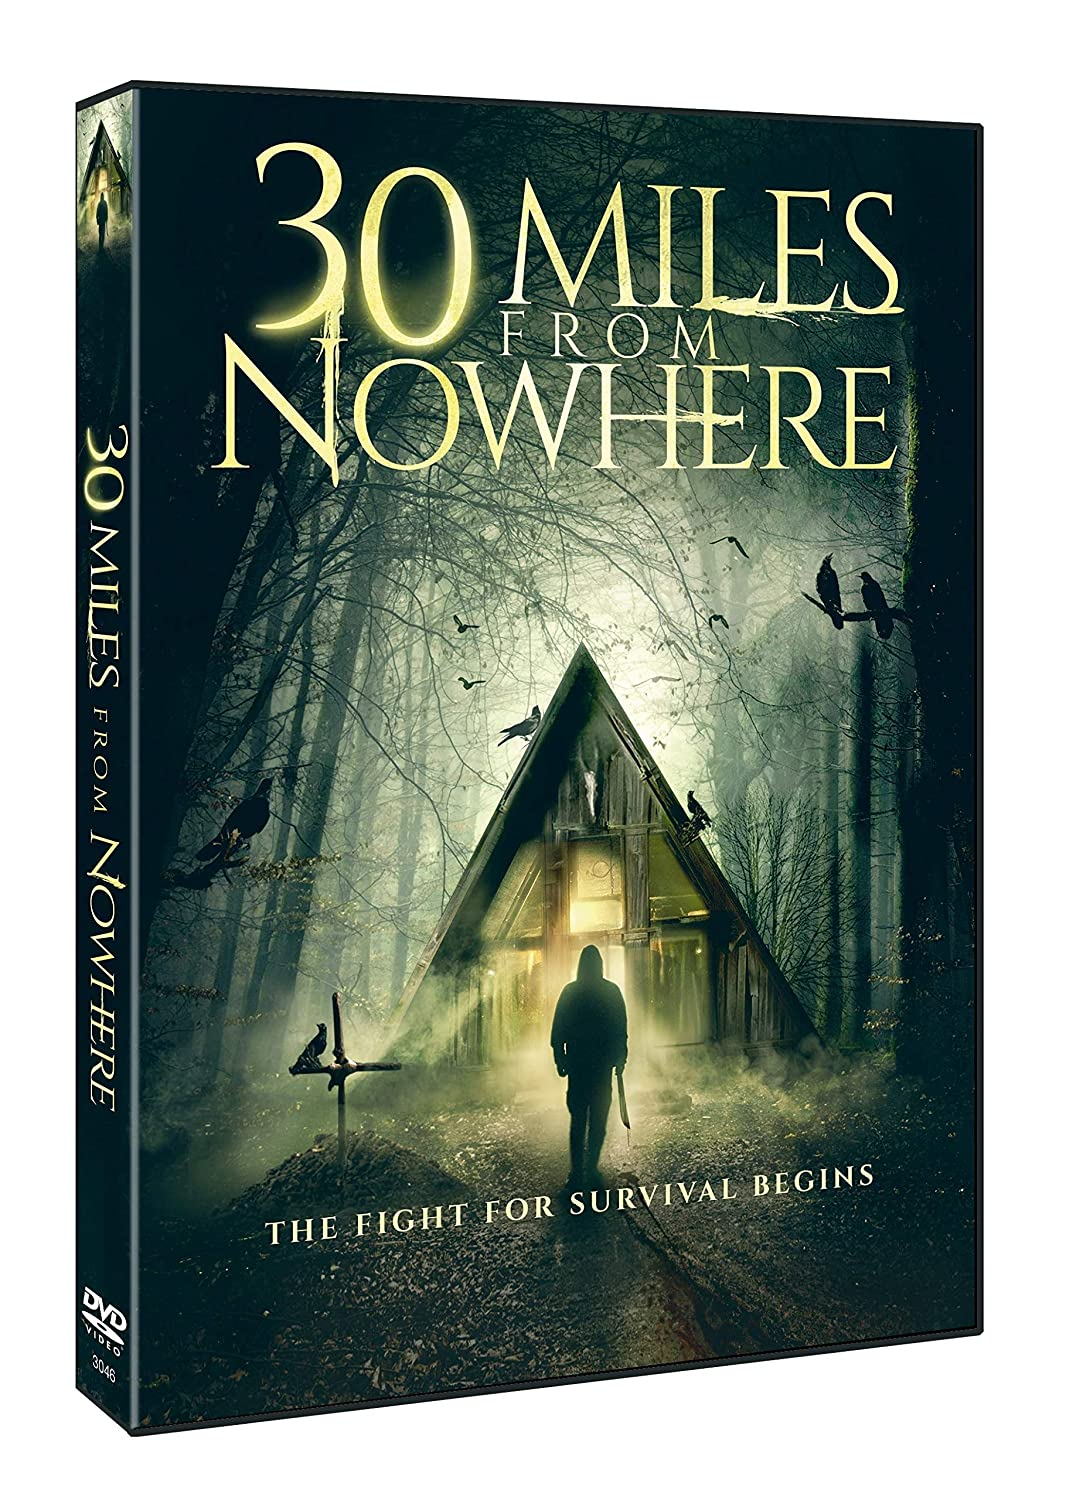 30 miles from nowhere cast